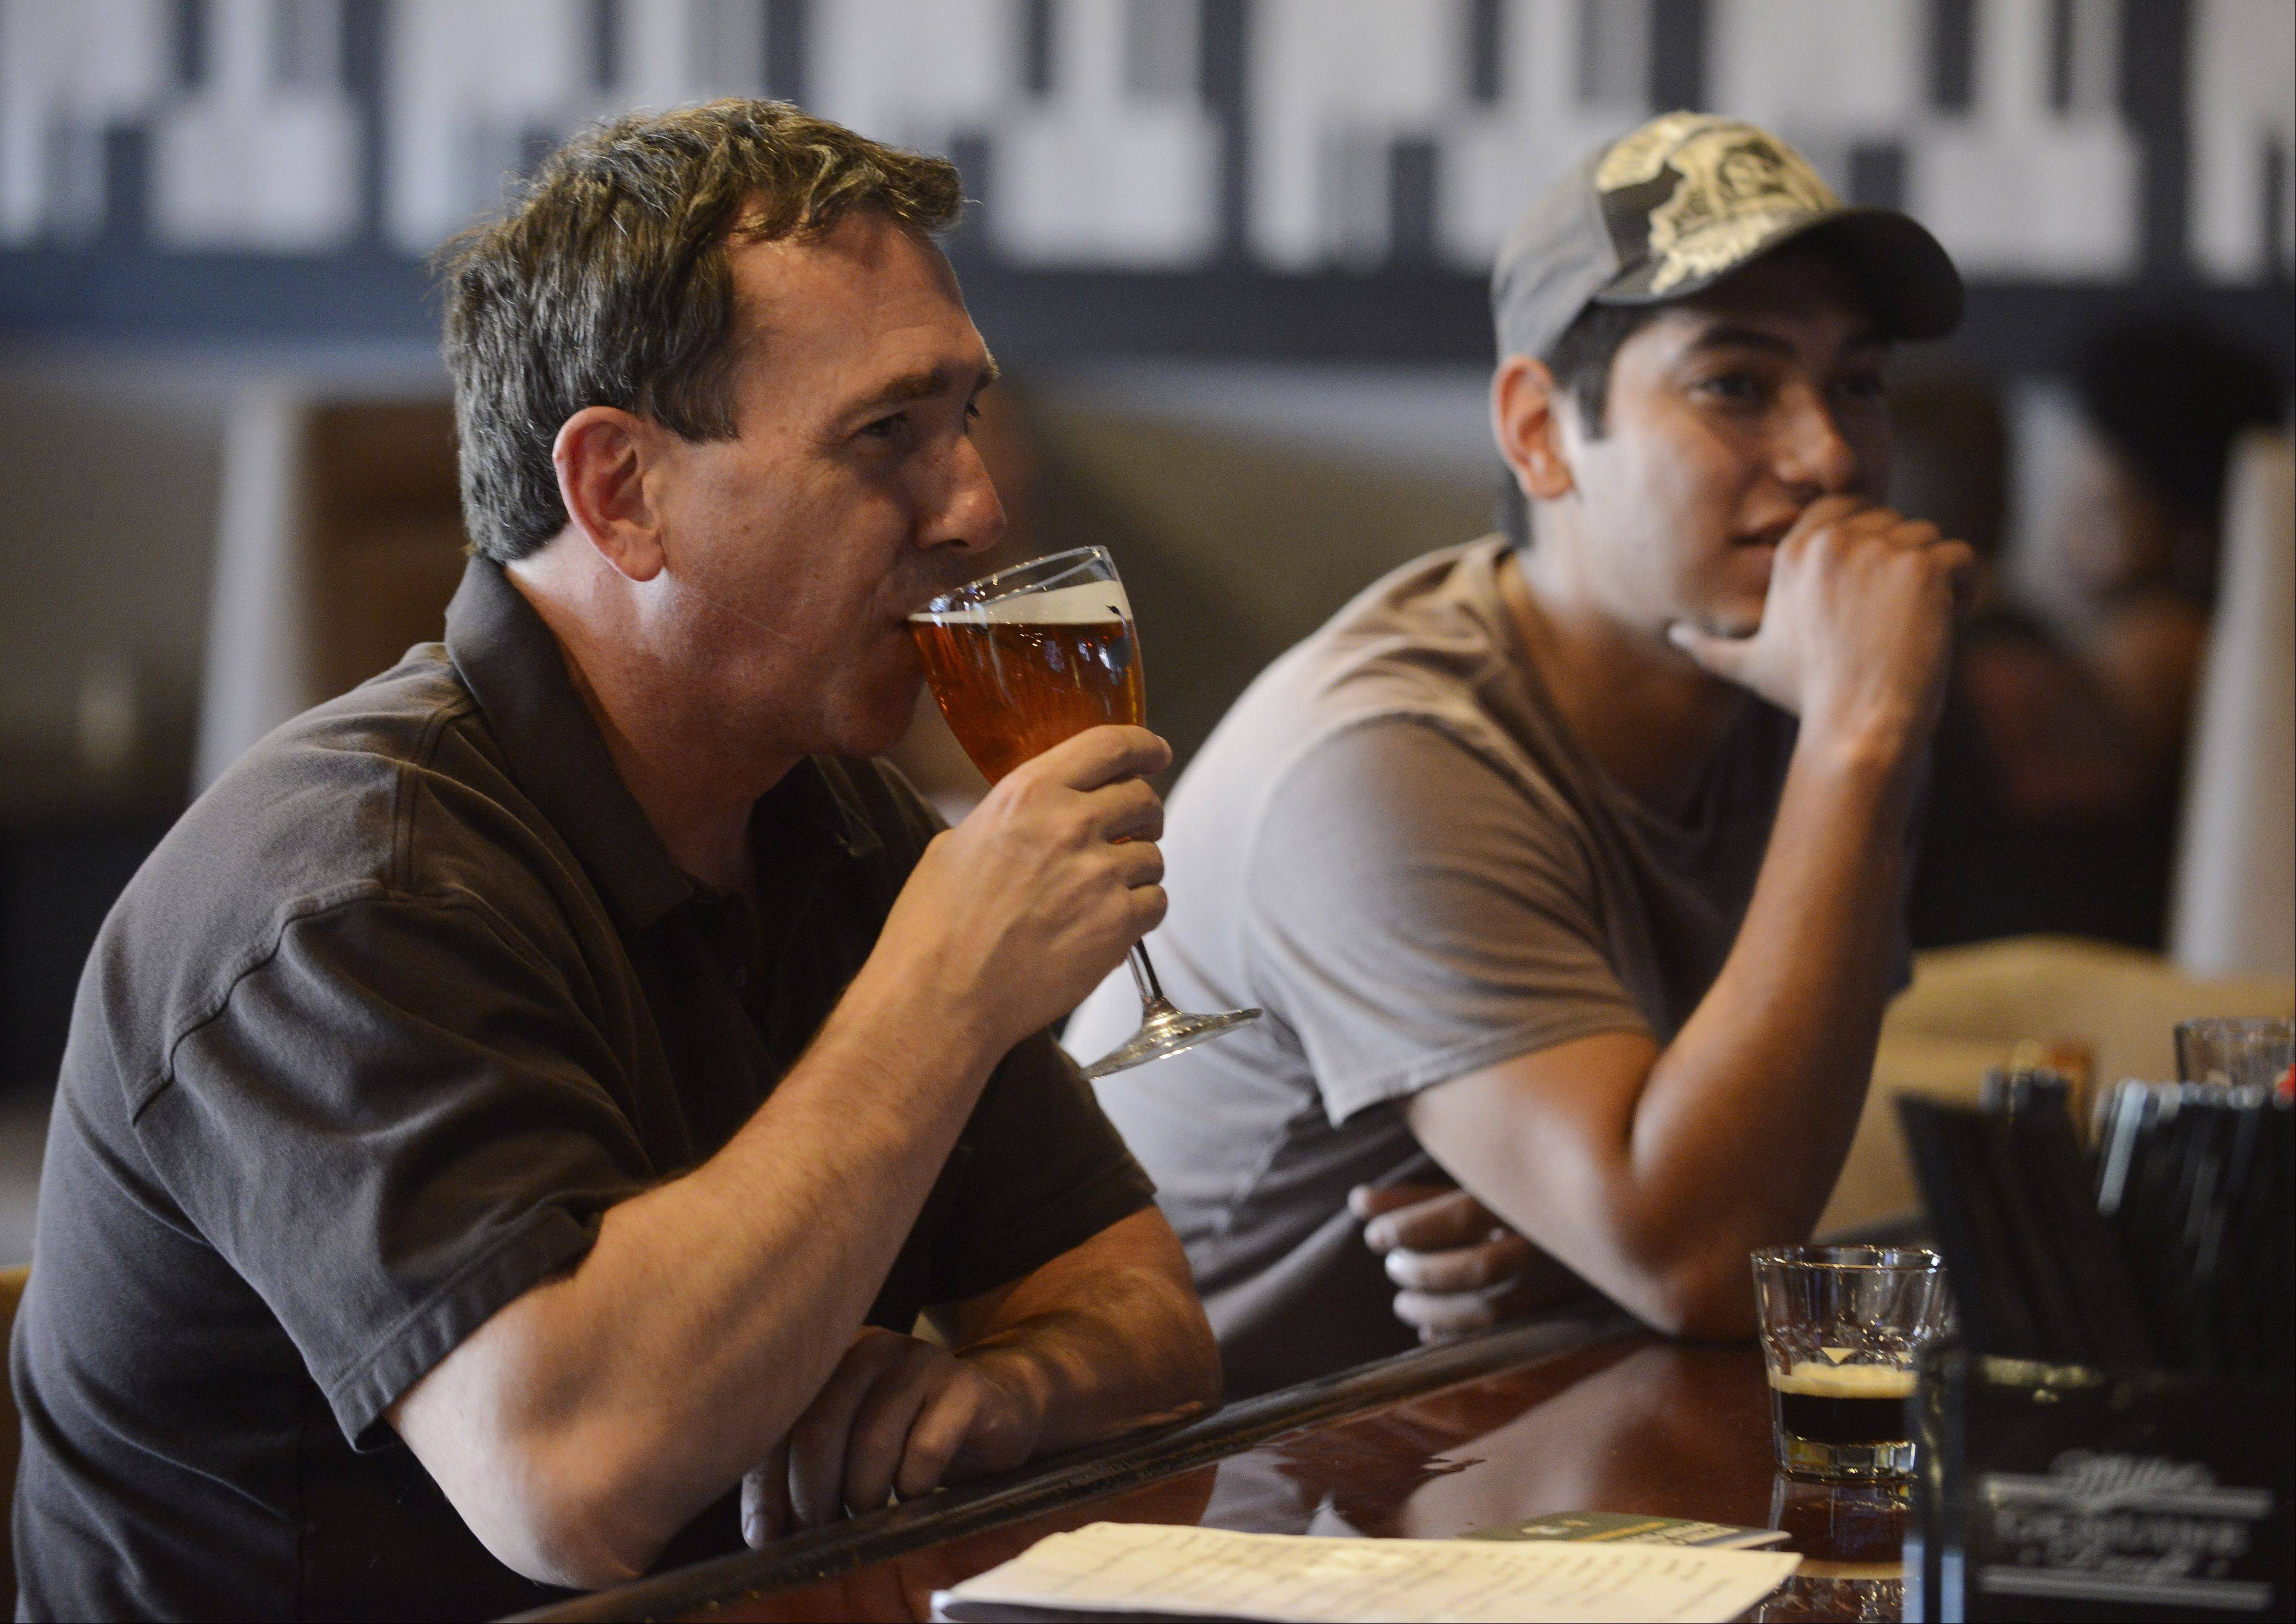 Steve Fink, left, has a beer at Schaumburg Ale House with his brother, Edward. Both are from Hoffman Estates.